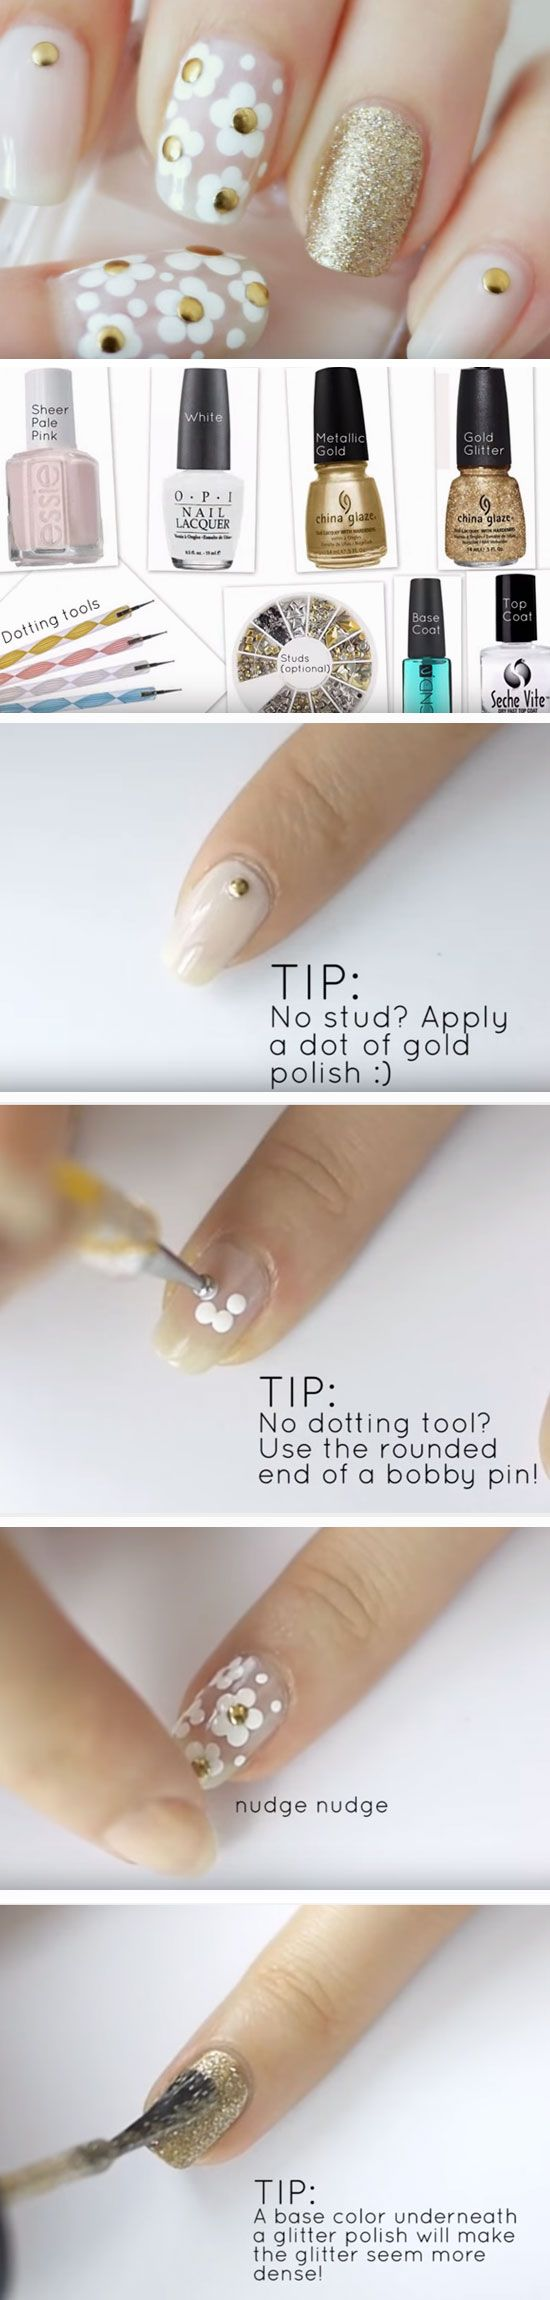 Marc Jacobs Daisy Inspired | Easy Spring Nail Designs for Short Nails 2016